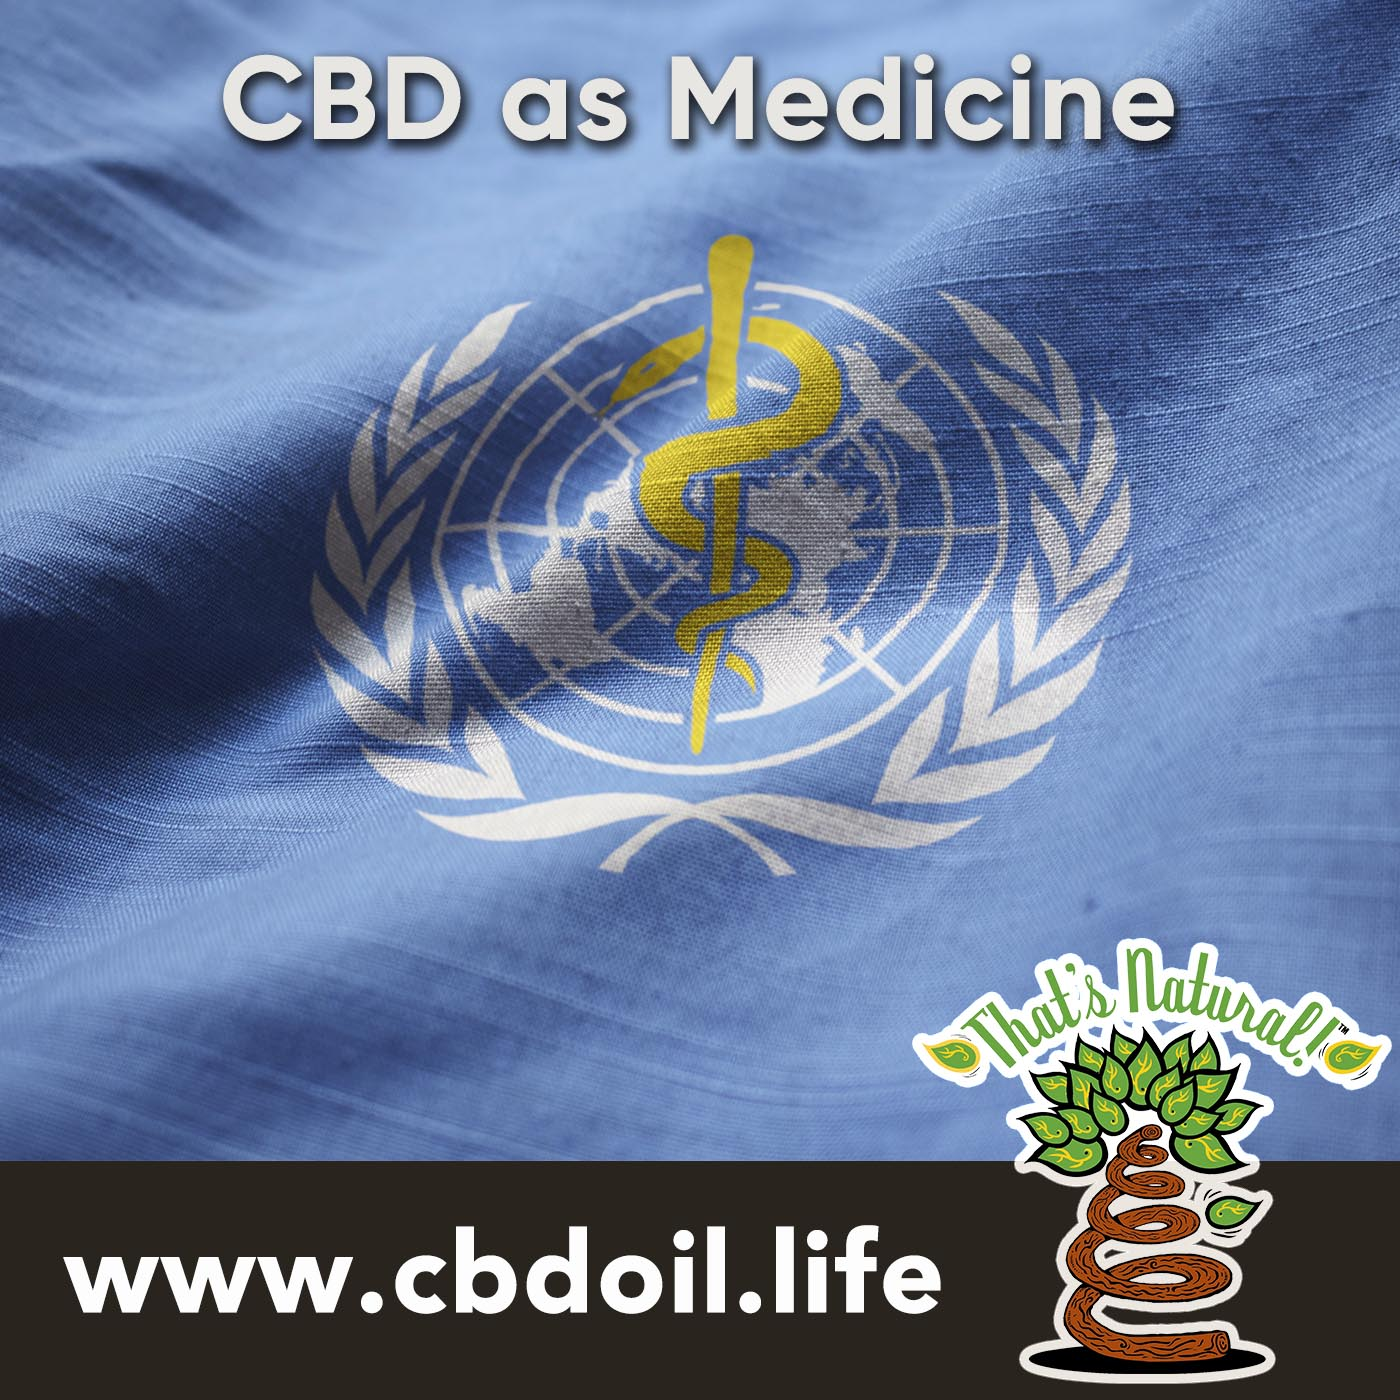 CBD as Medicine - UN WHO Flag - Full Spectrum CBD from That's Natural at www.cbdoil.life